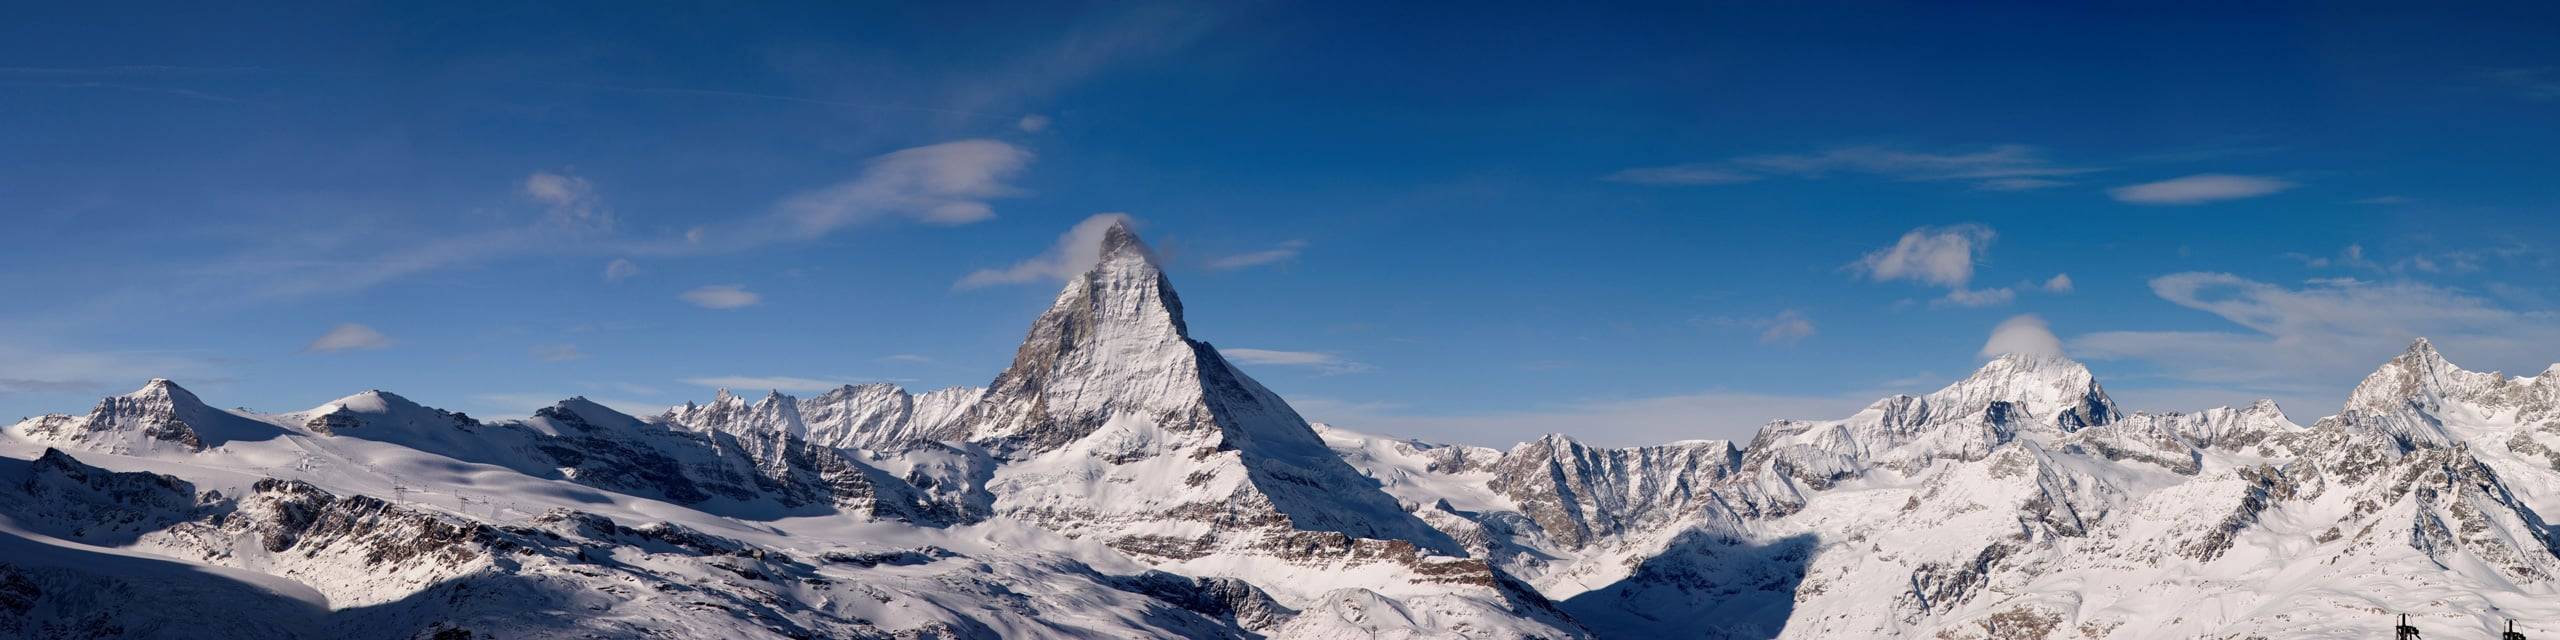 Welcome to the Matterhorn - swiss immigration + relocations services